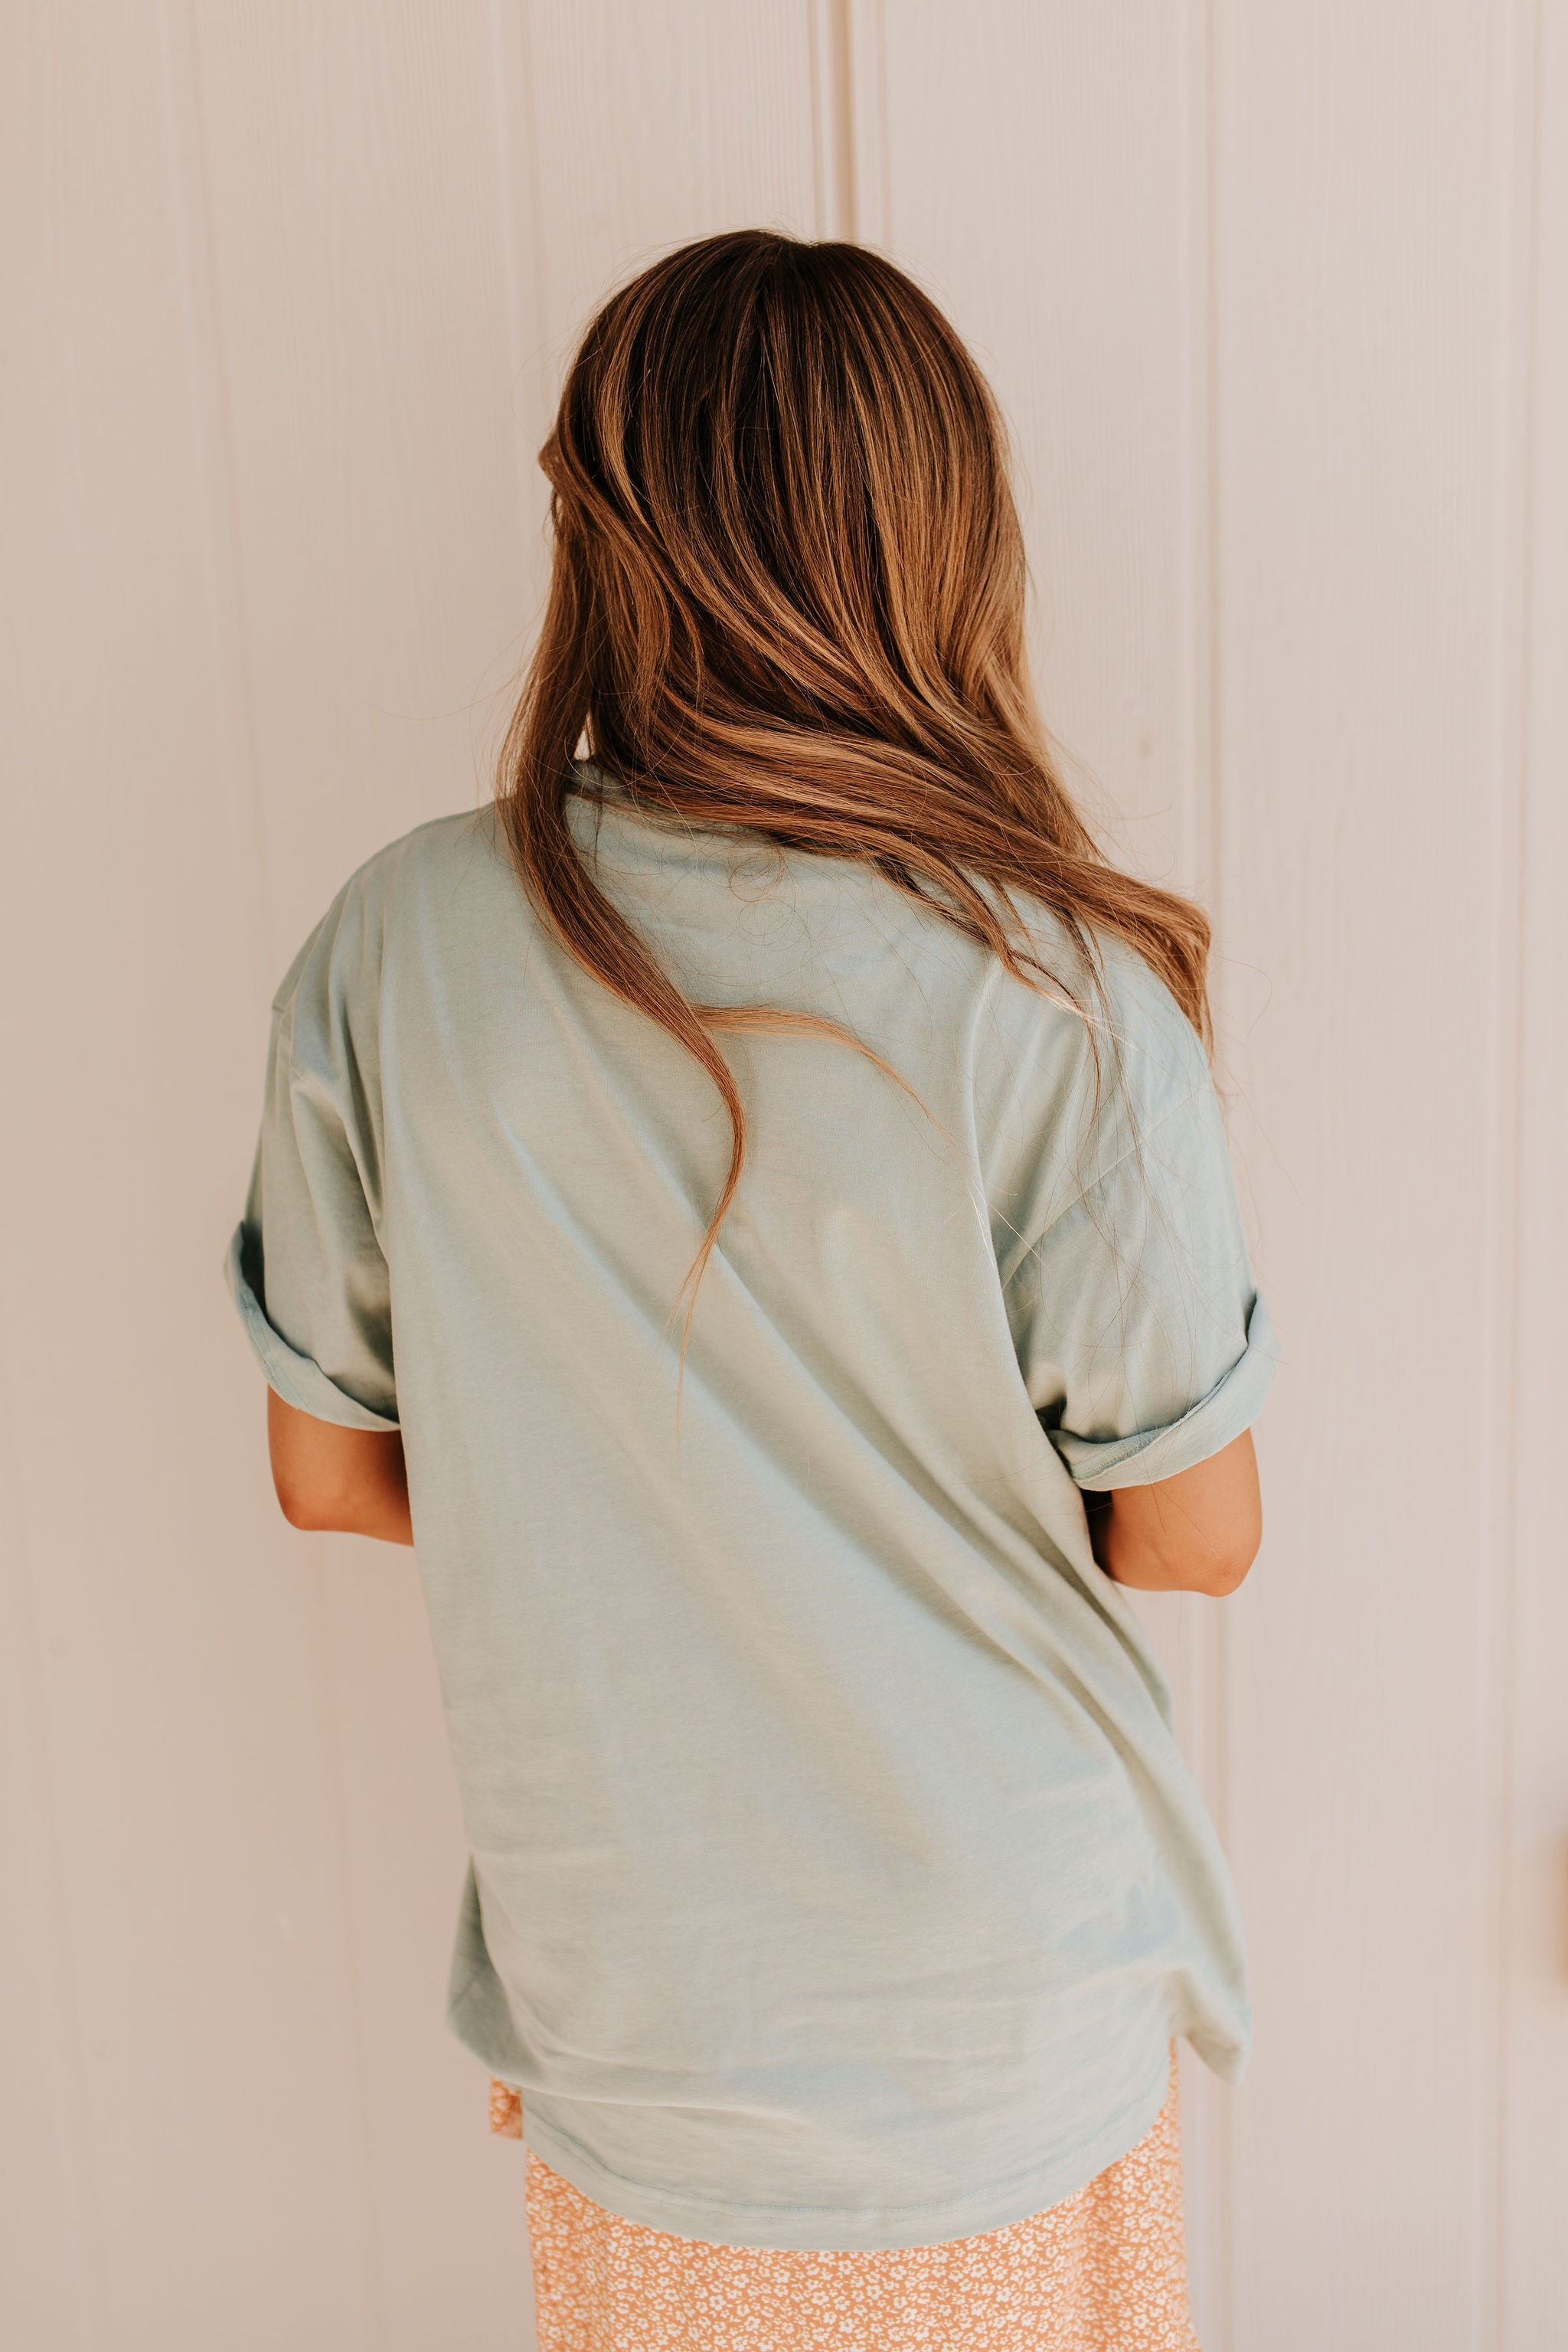 THE RETRO TAKE IT EASY GRAPHIC TEE IN SEAFOAM